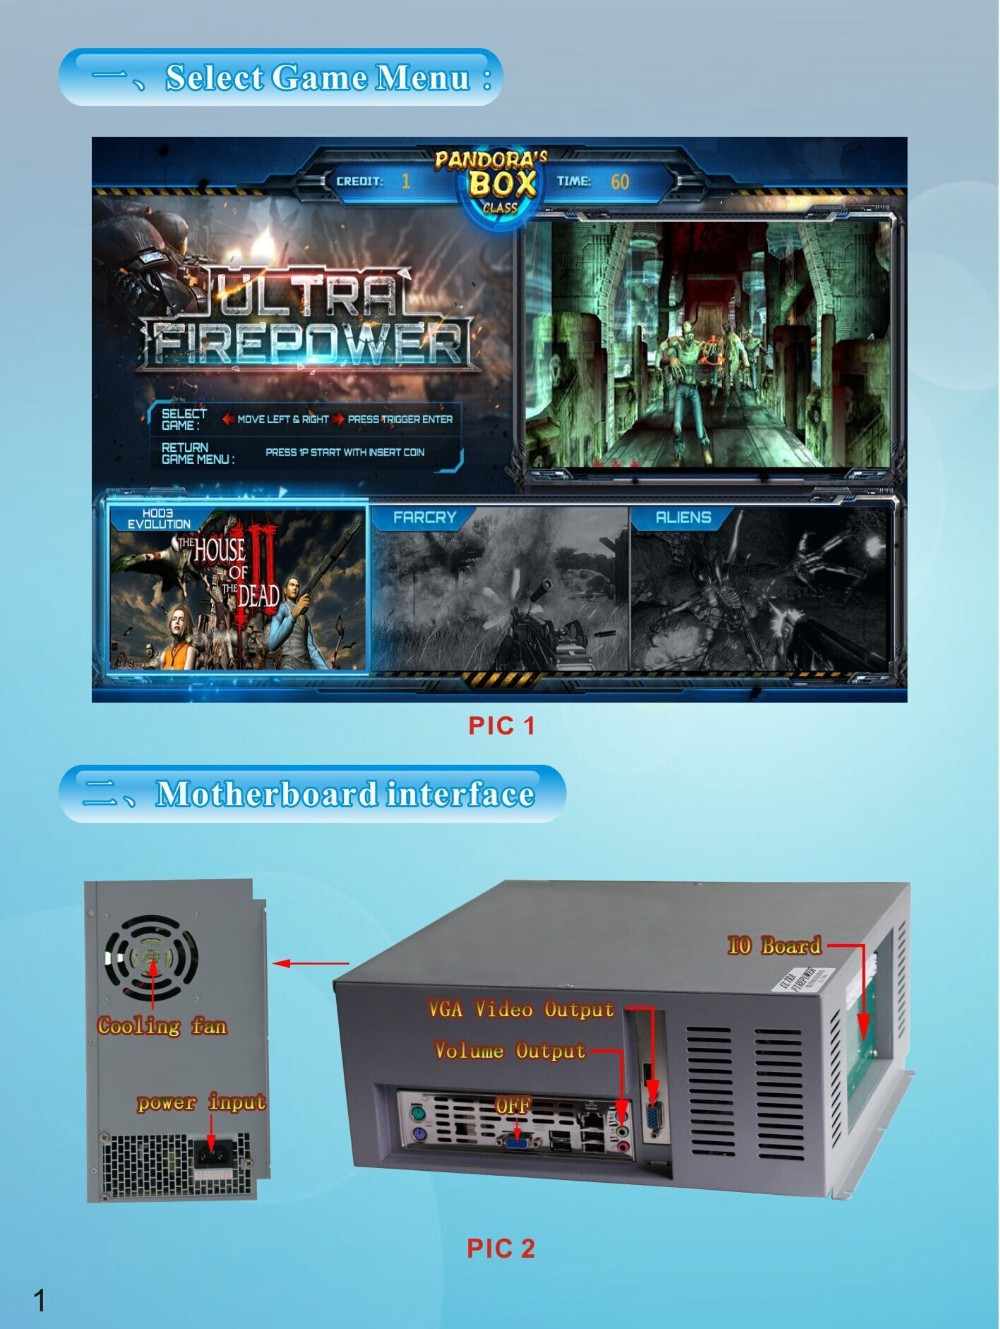 Alien Farcry The House Of Dead 3 In 1 Kit Shooting Kit Simulate